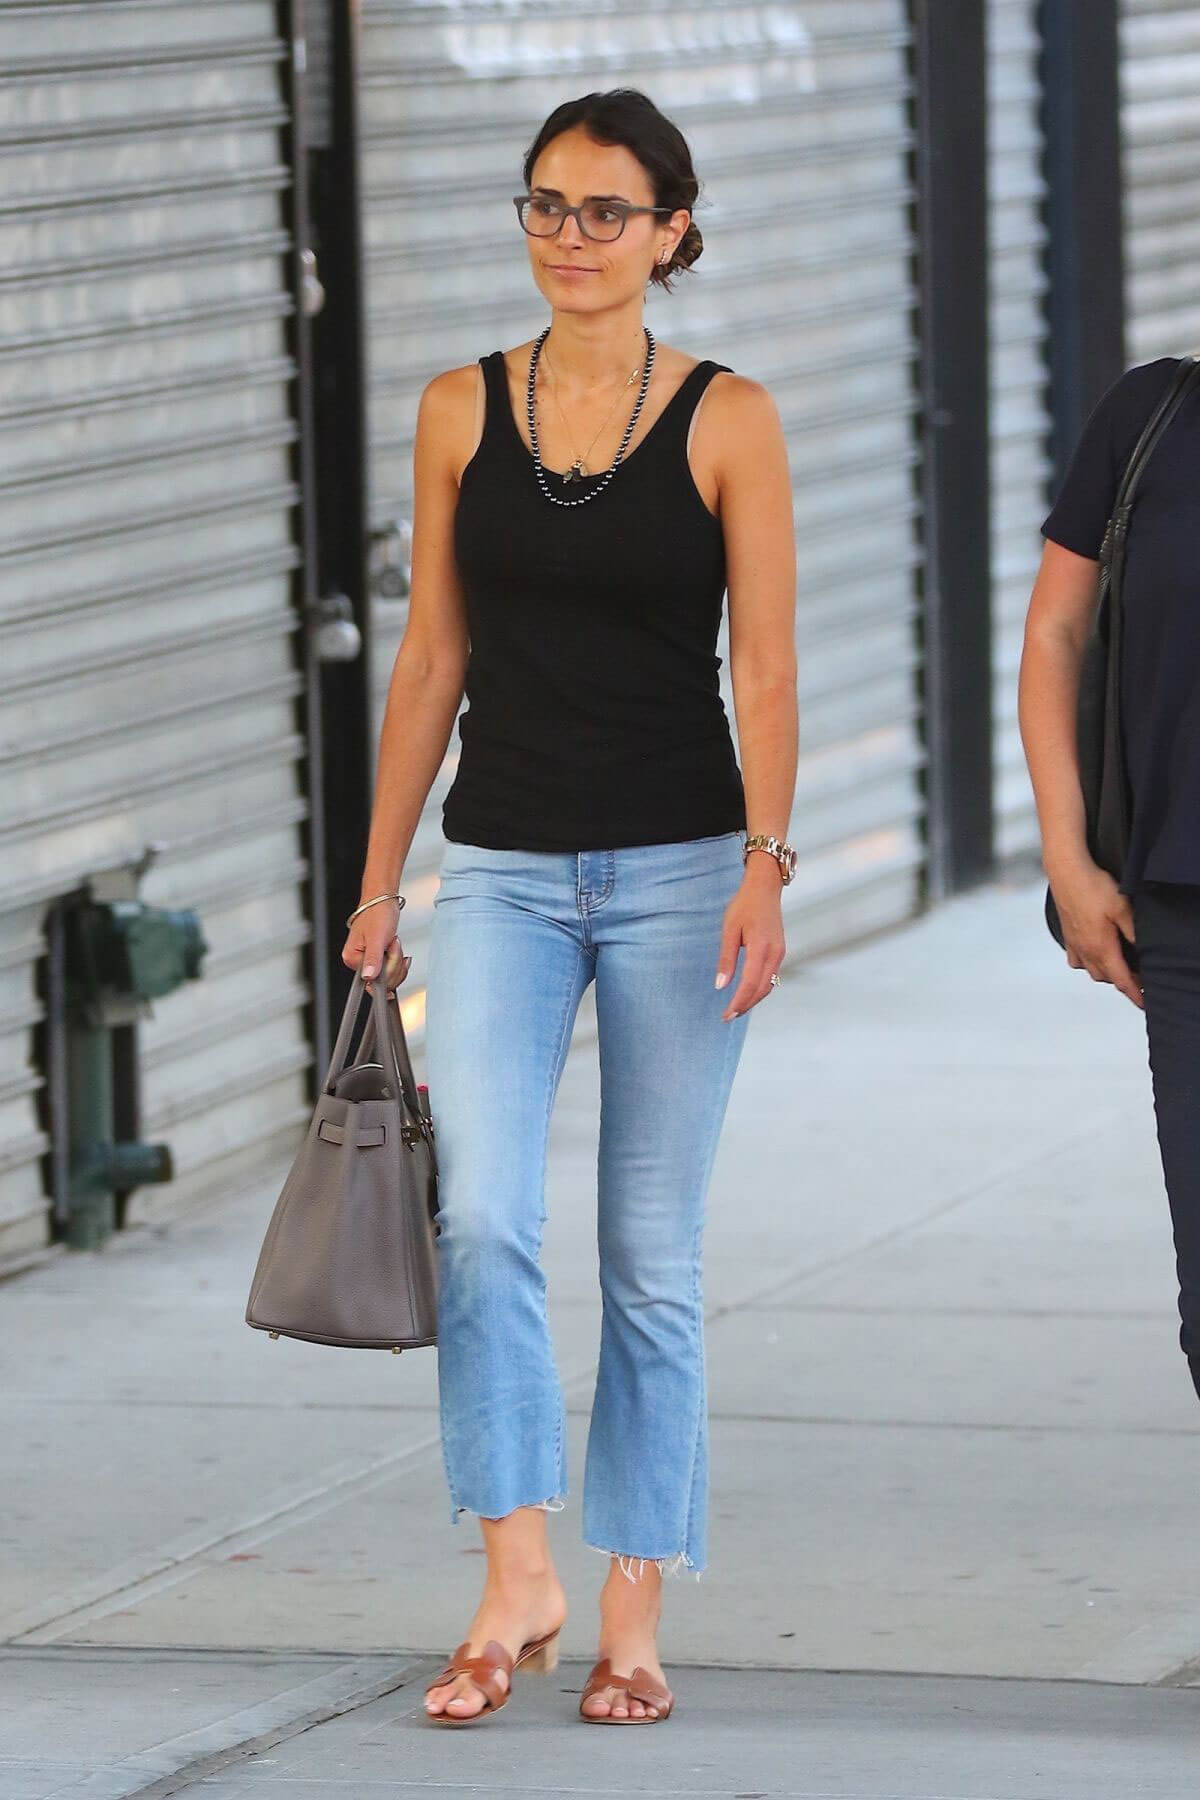 Jordana Brewster Stills Out and About in New York